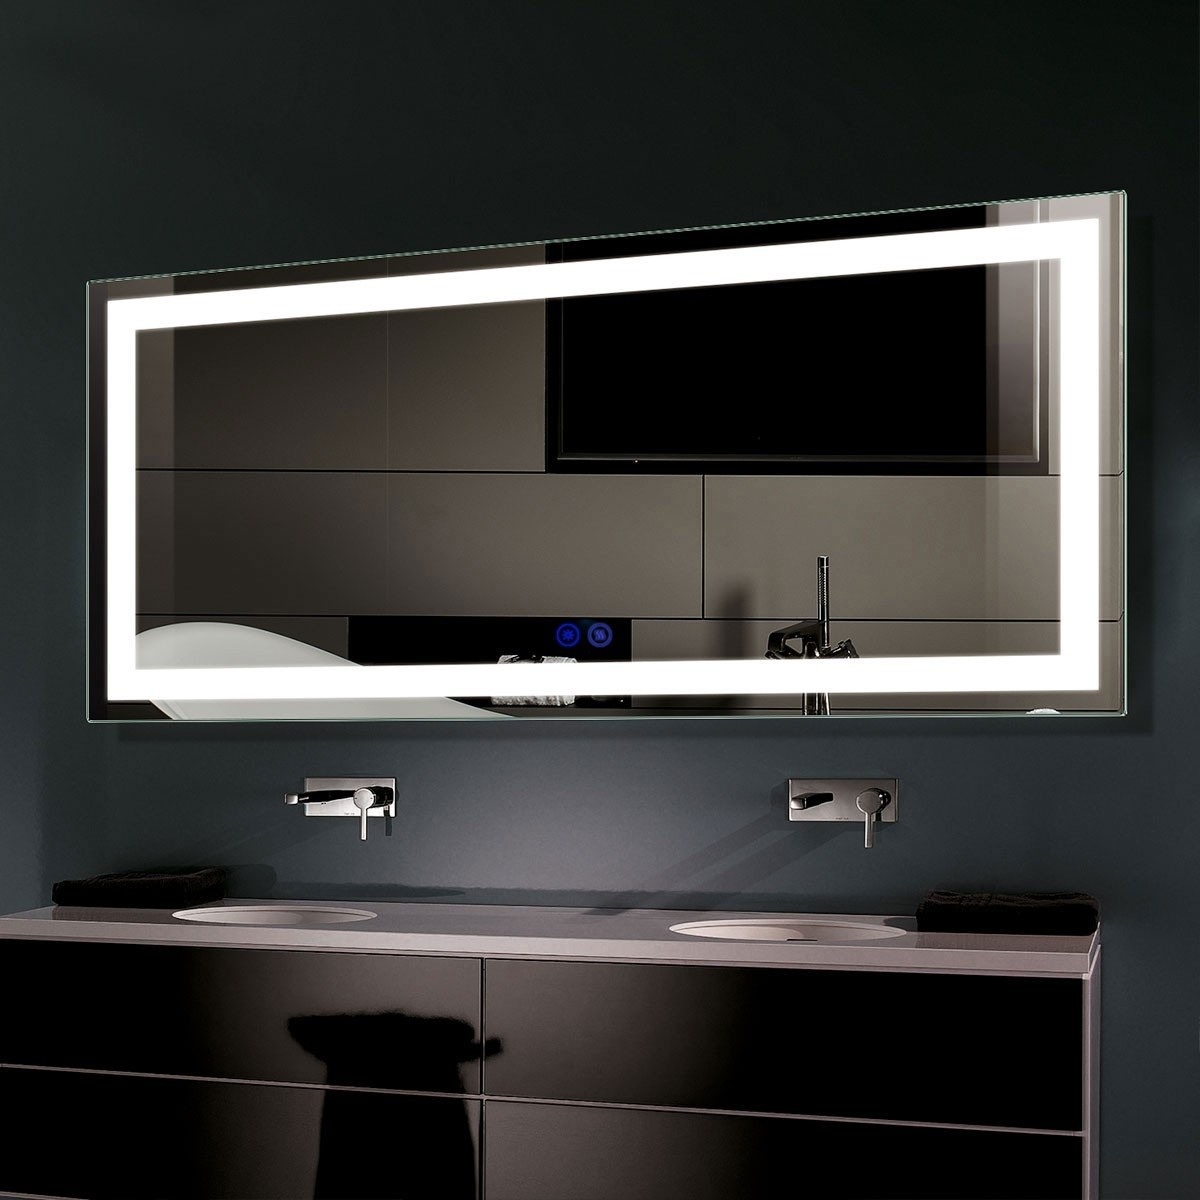 DECORAPORT 60 x 28 Inch LED Bathroom Mirror with Touch Button, Anti Fog, Dimmable, Vertical & Horizontal Mount (CT04-6028)